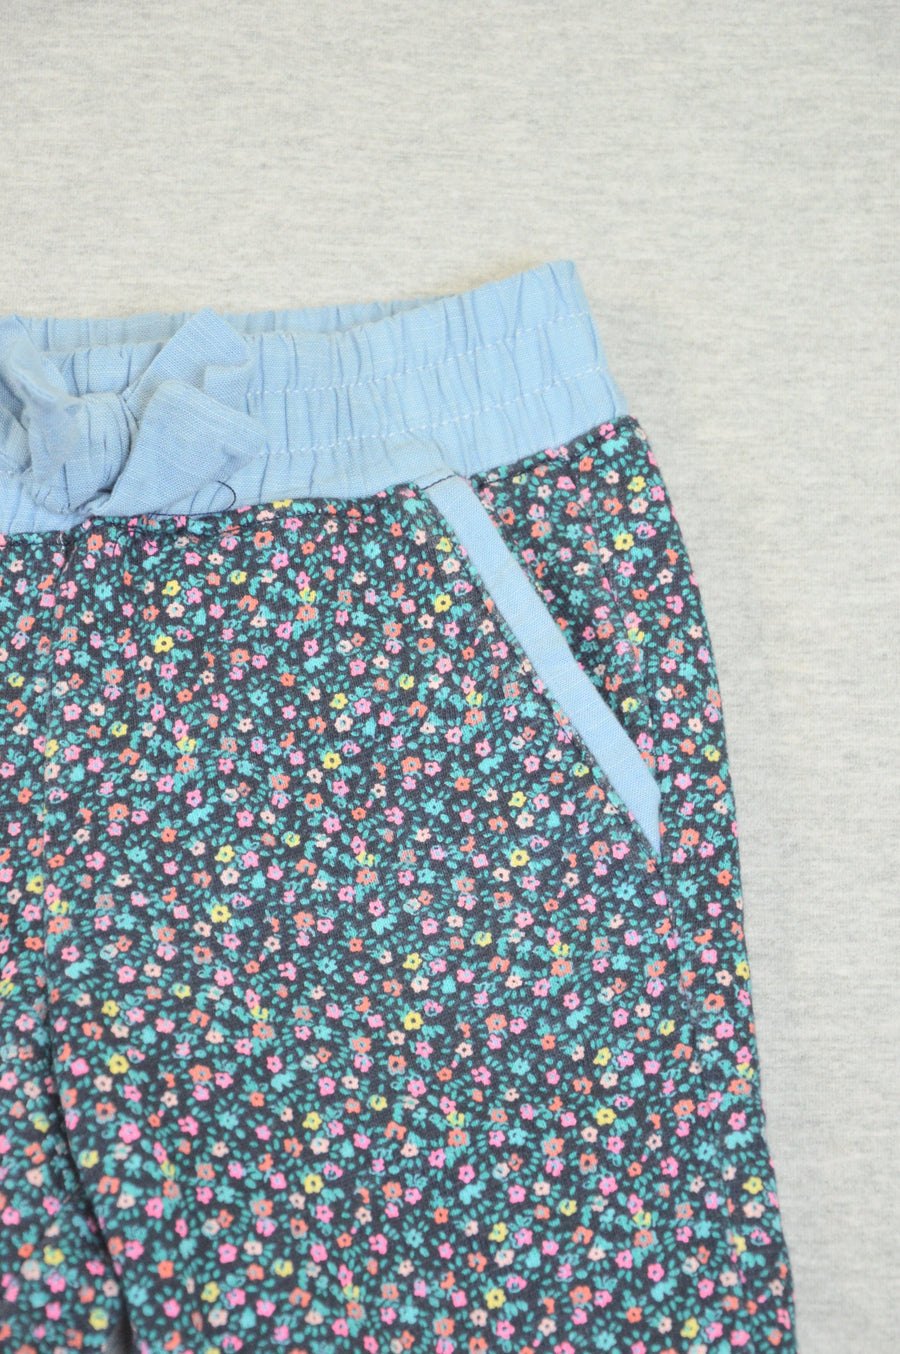 Gap - nearly new - floral track pants, size 24m